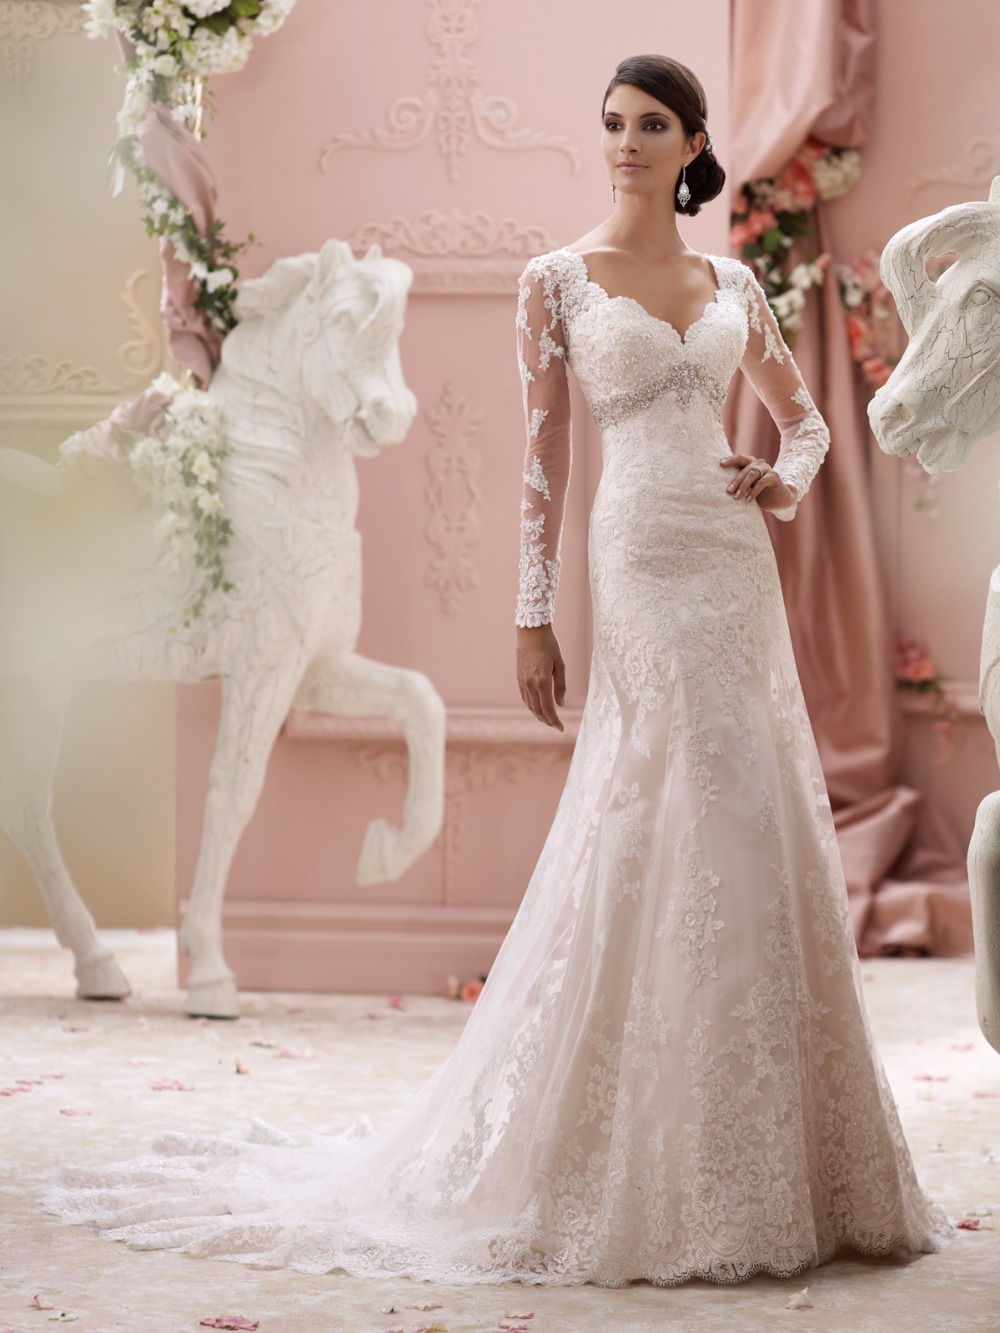 Mermaid Wedding Dress 2015 Full Sleeves Lace Appliqued Transparent ...